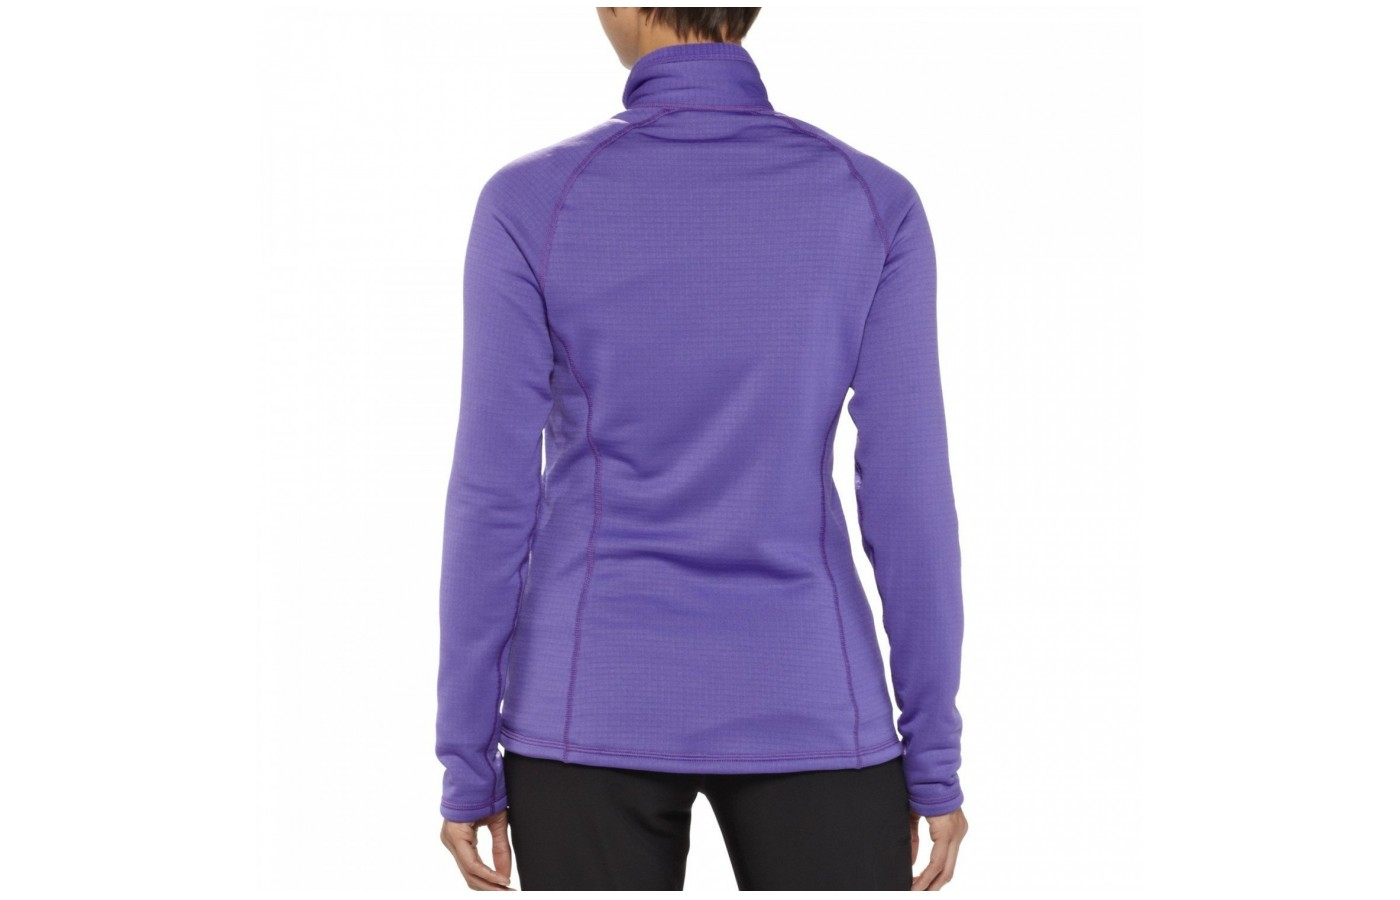 The fleece is made out of a very durable material.